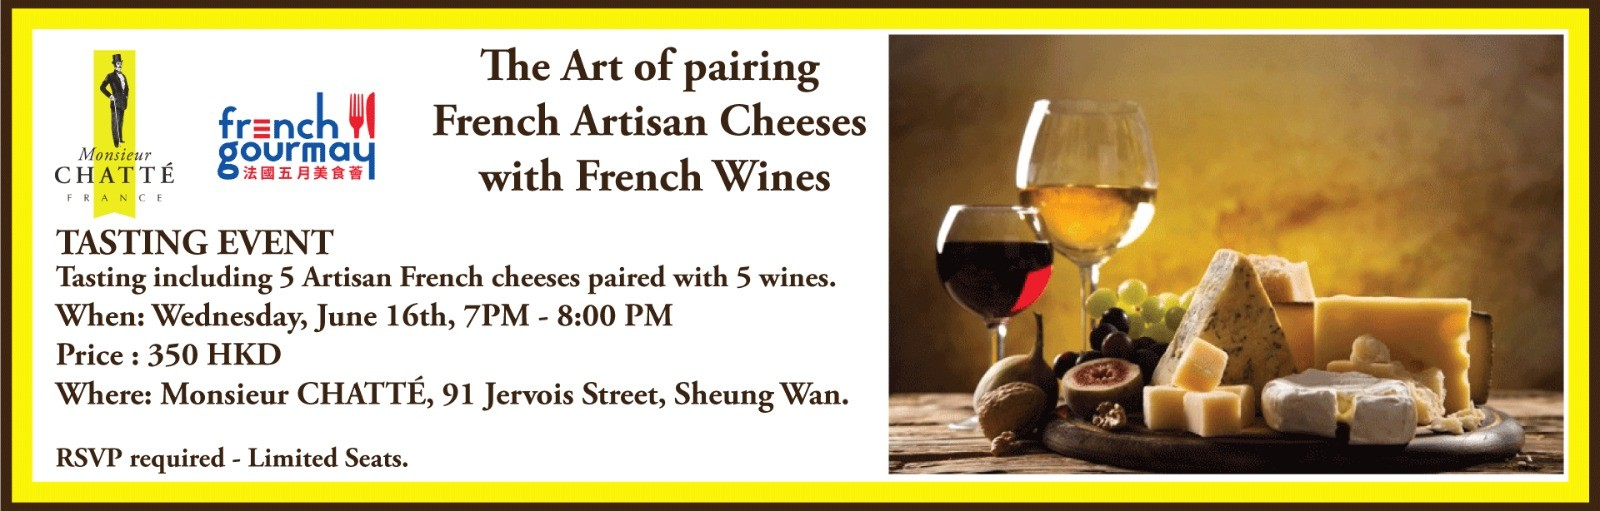 The art of French Artisan Cheeses pairing with French Wines